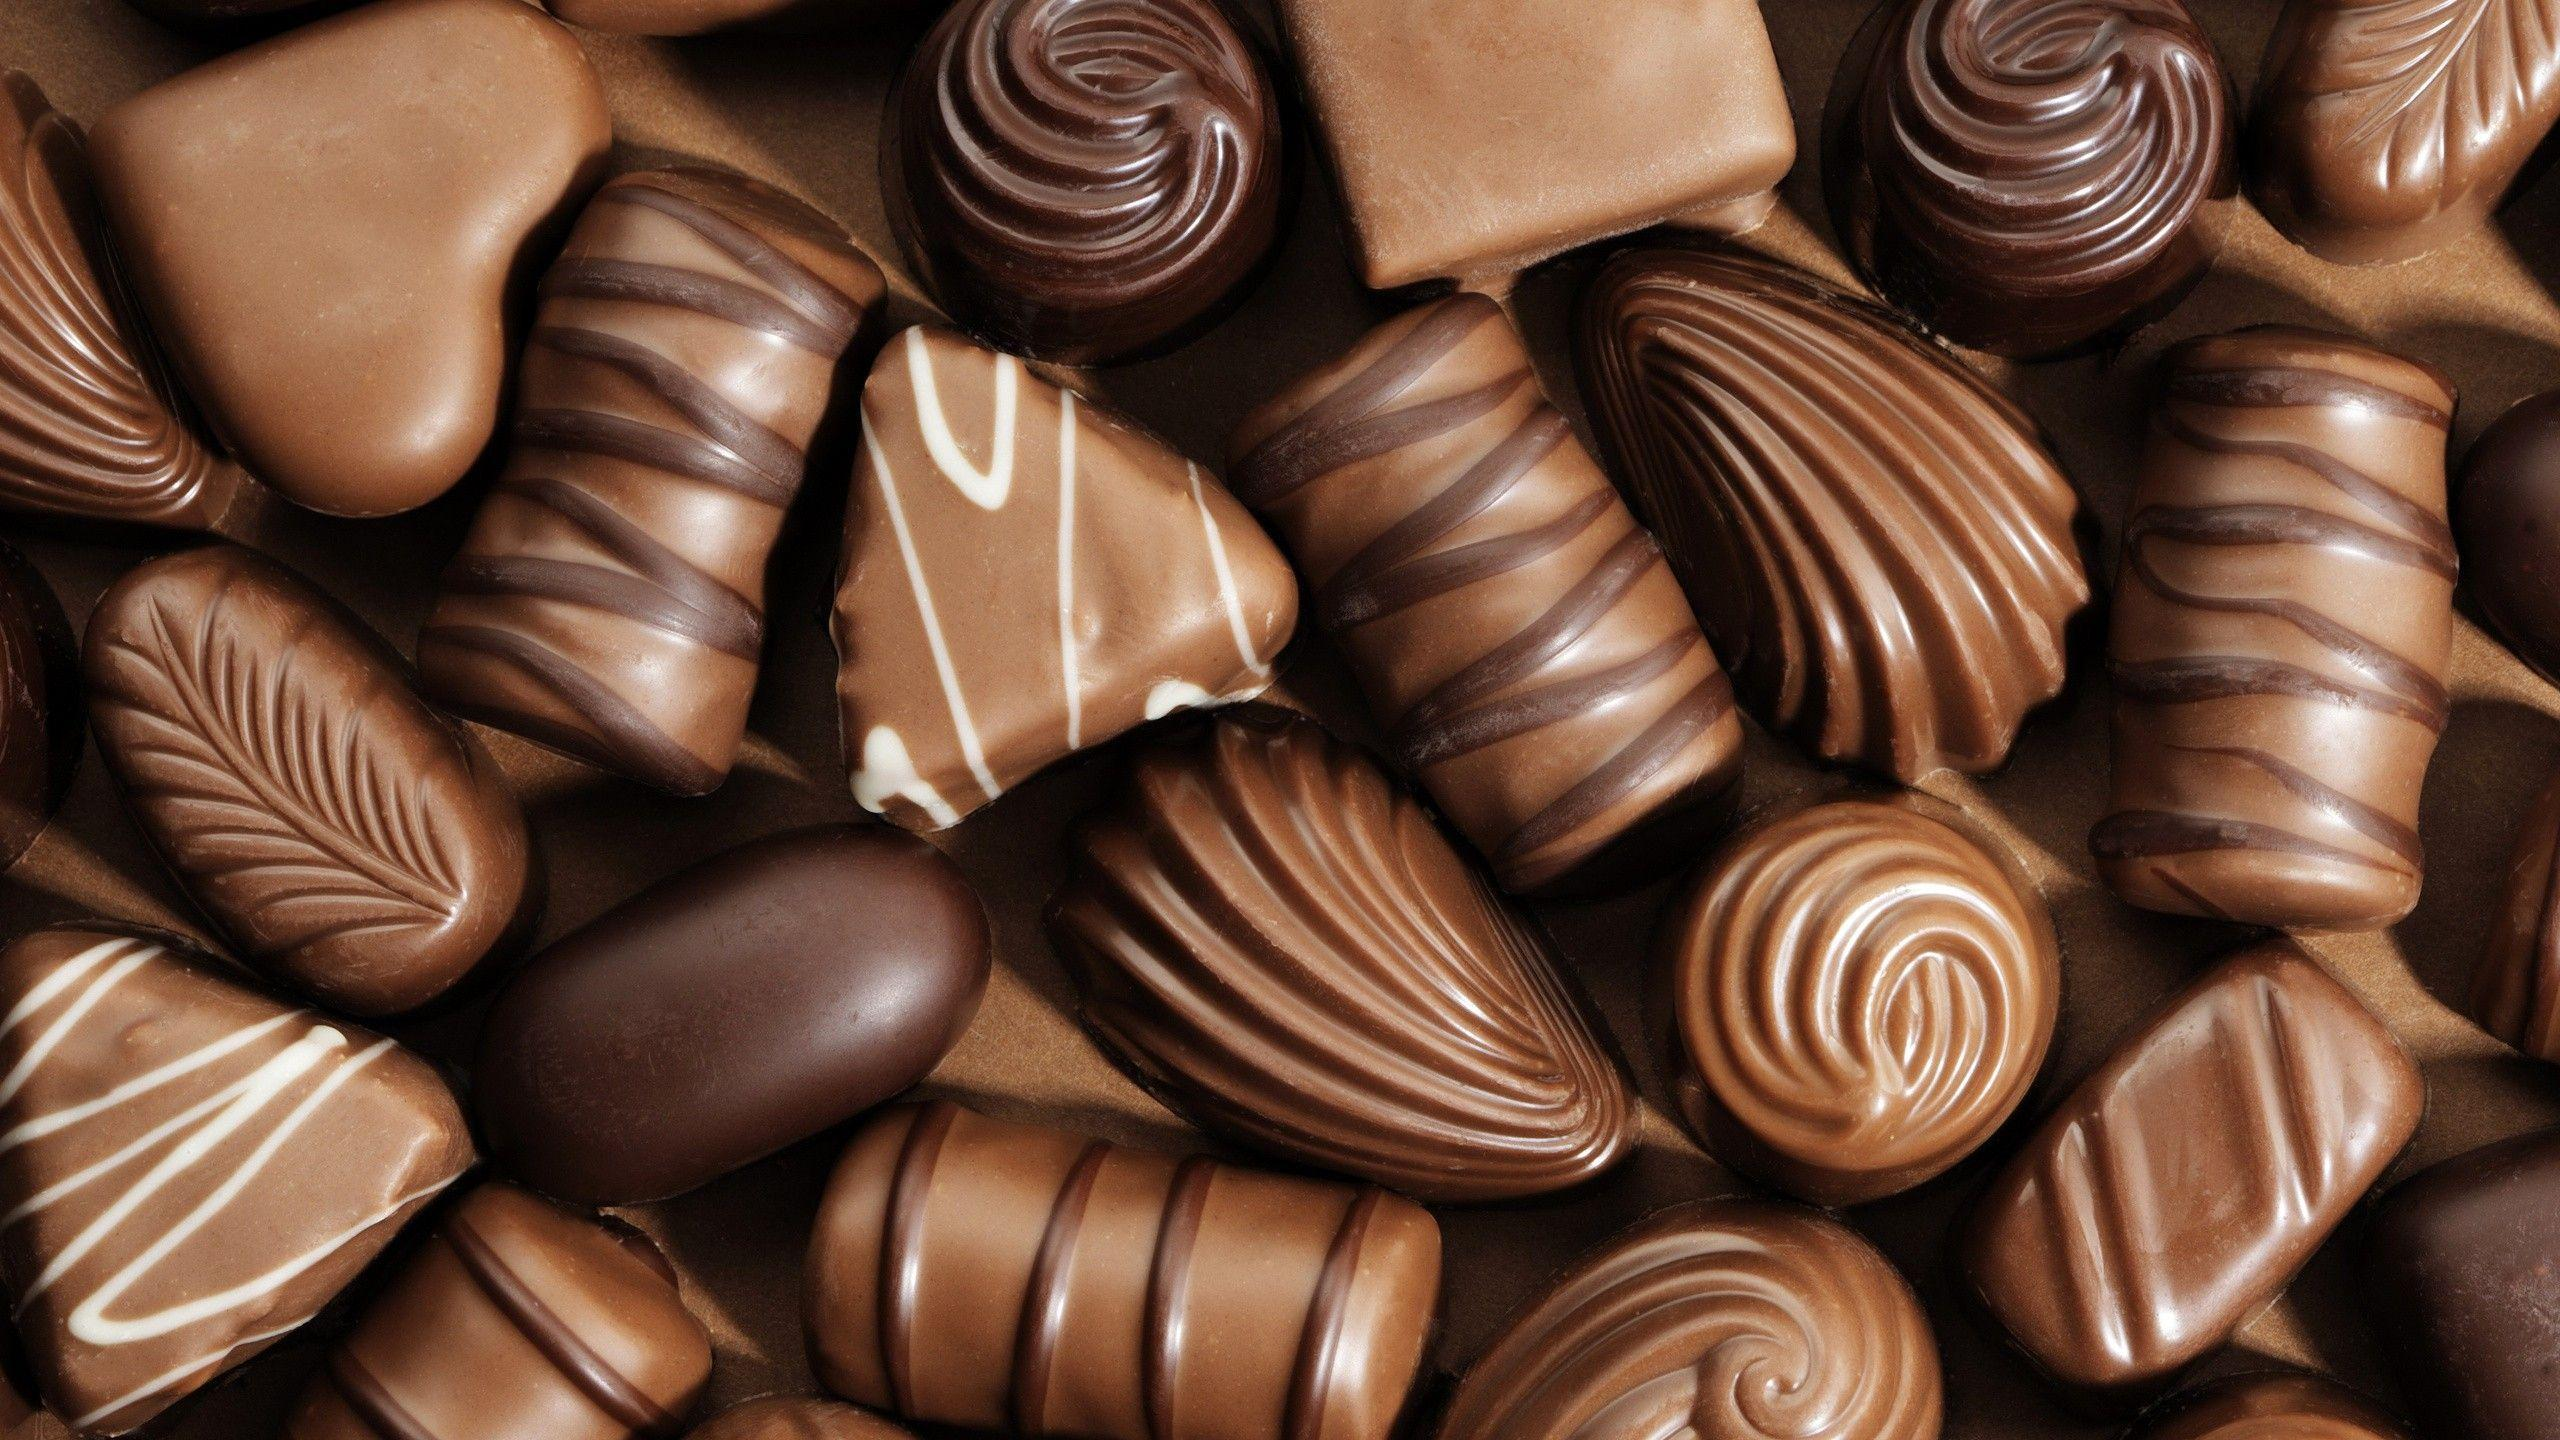 Beautiful chocolates wallpapers and image